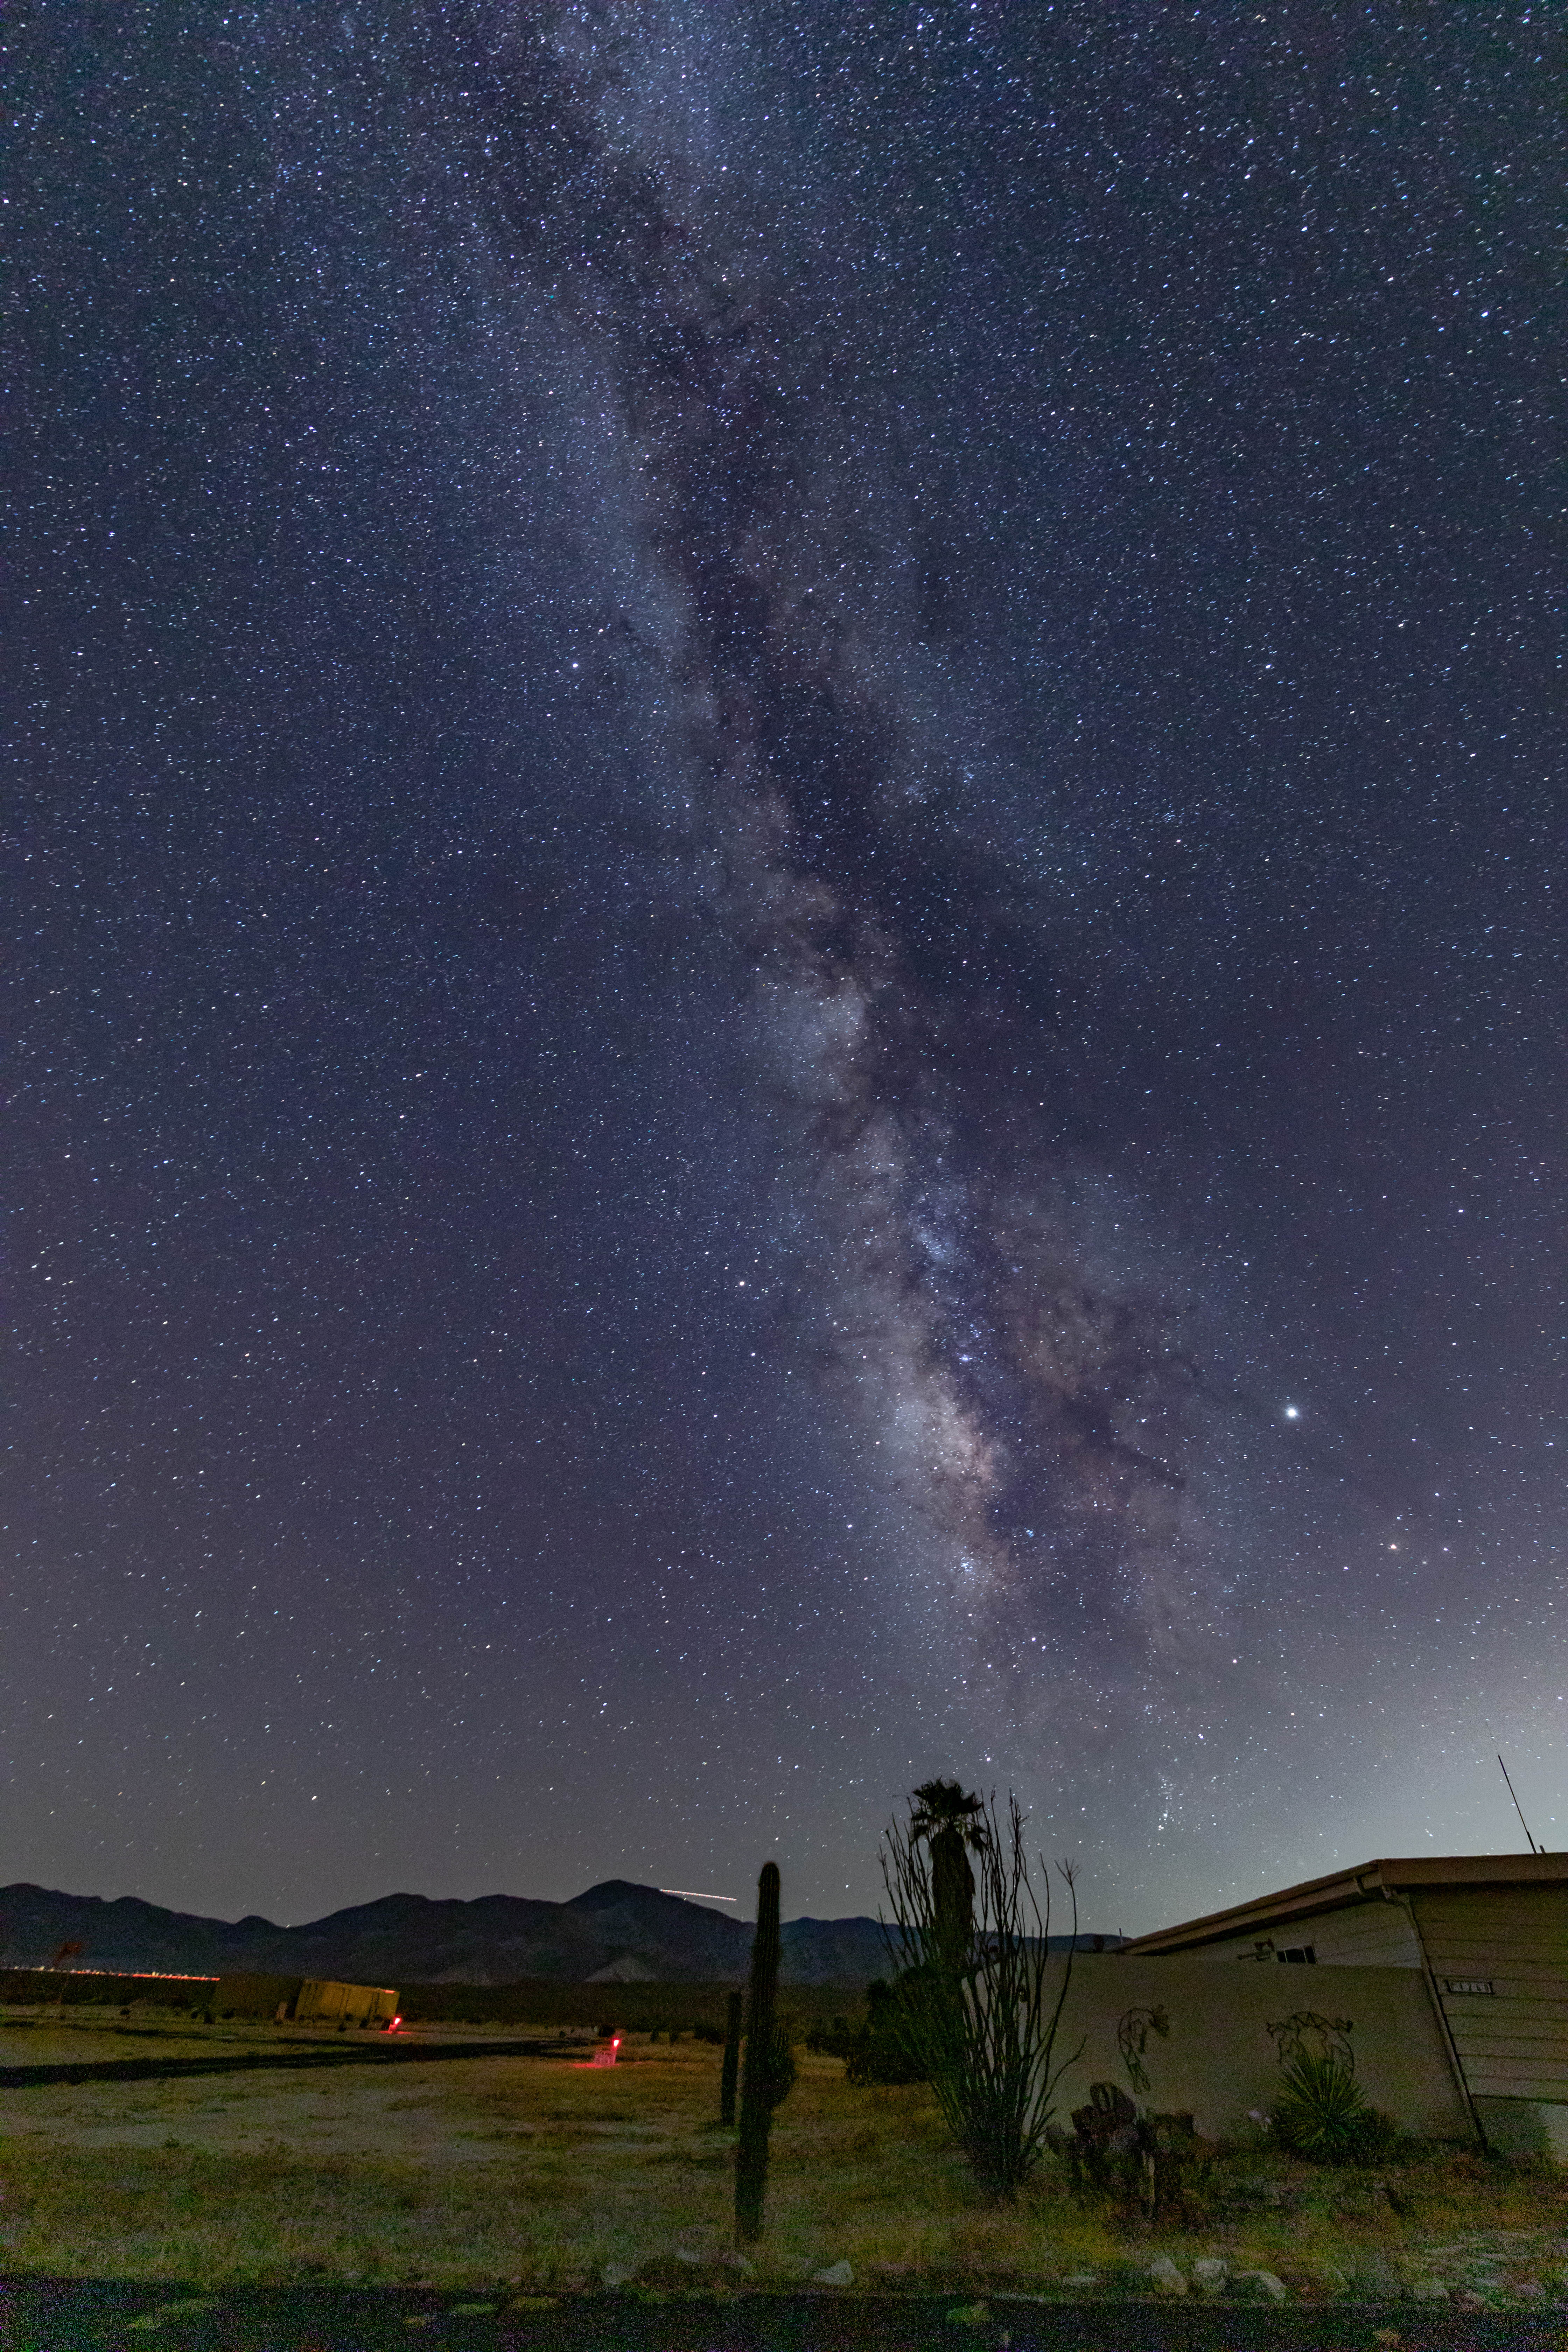 hj_2019-8-29-nightsky-milkyway-vertical-green (1 of 1).jpg